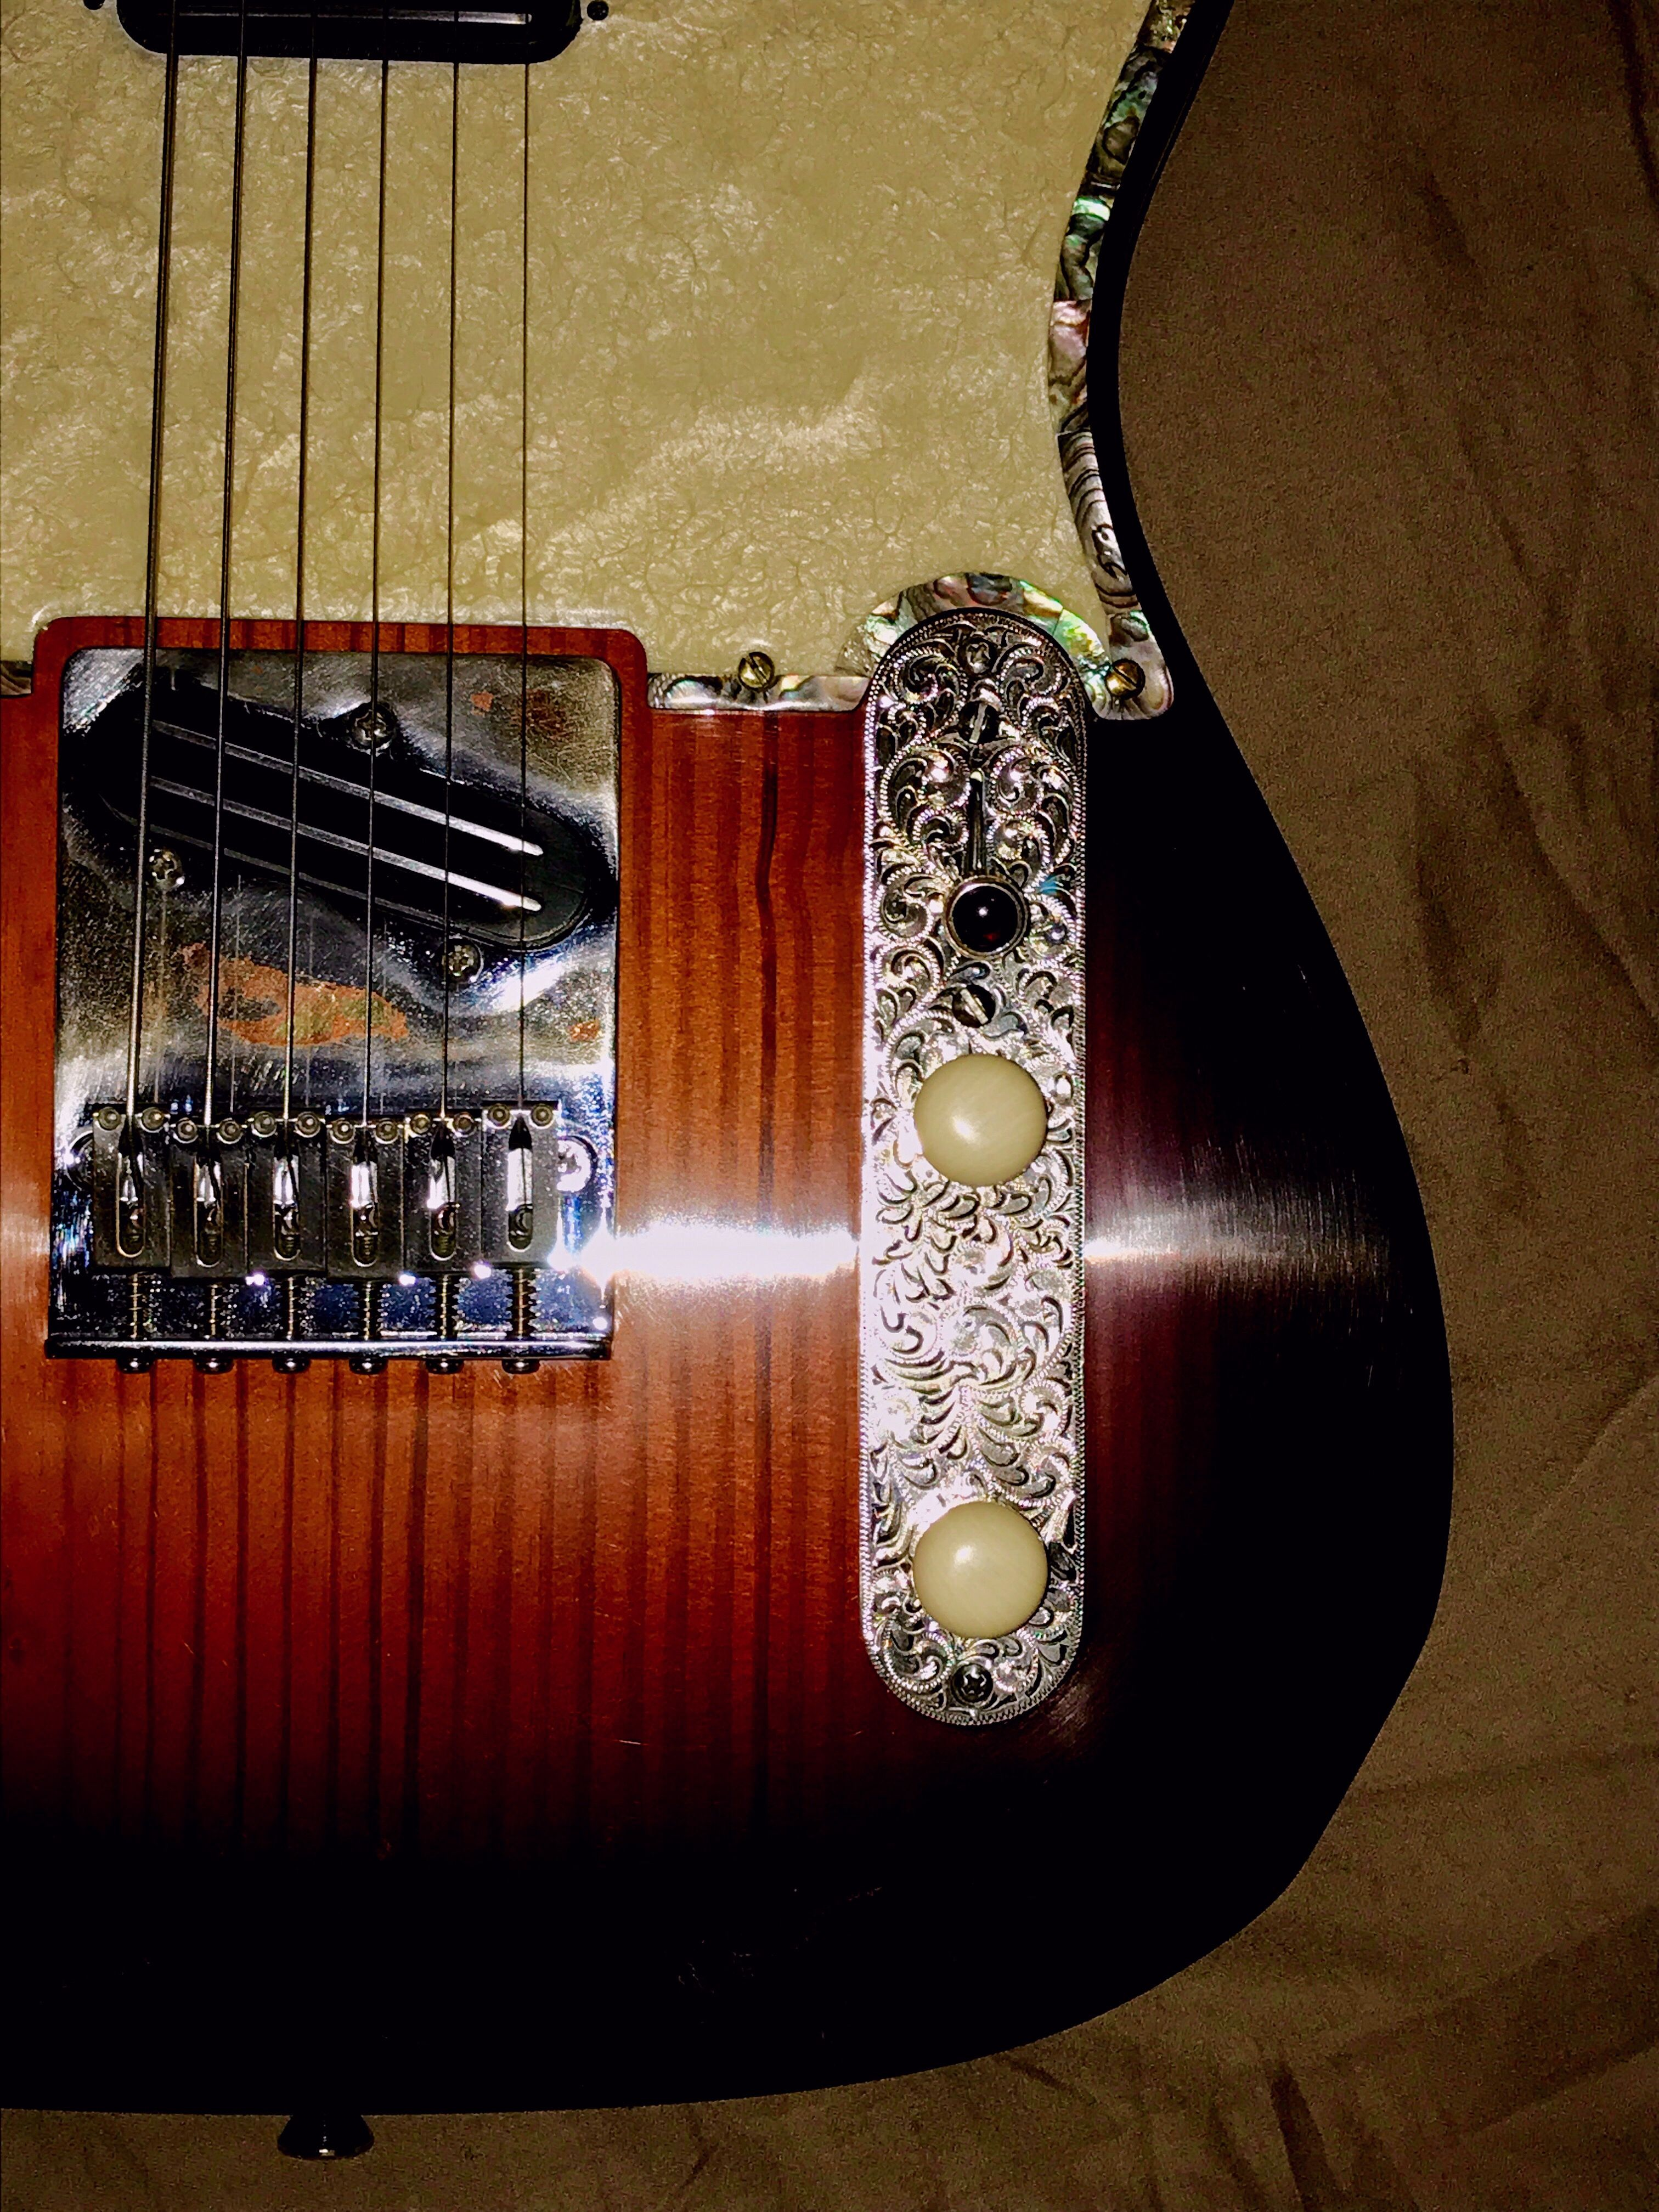 Pin by Lisa Cowell on Awesome Guitars Accessories